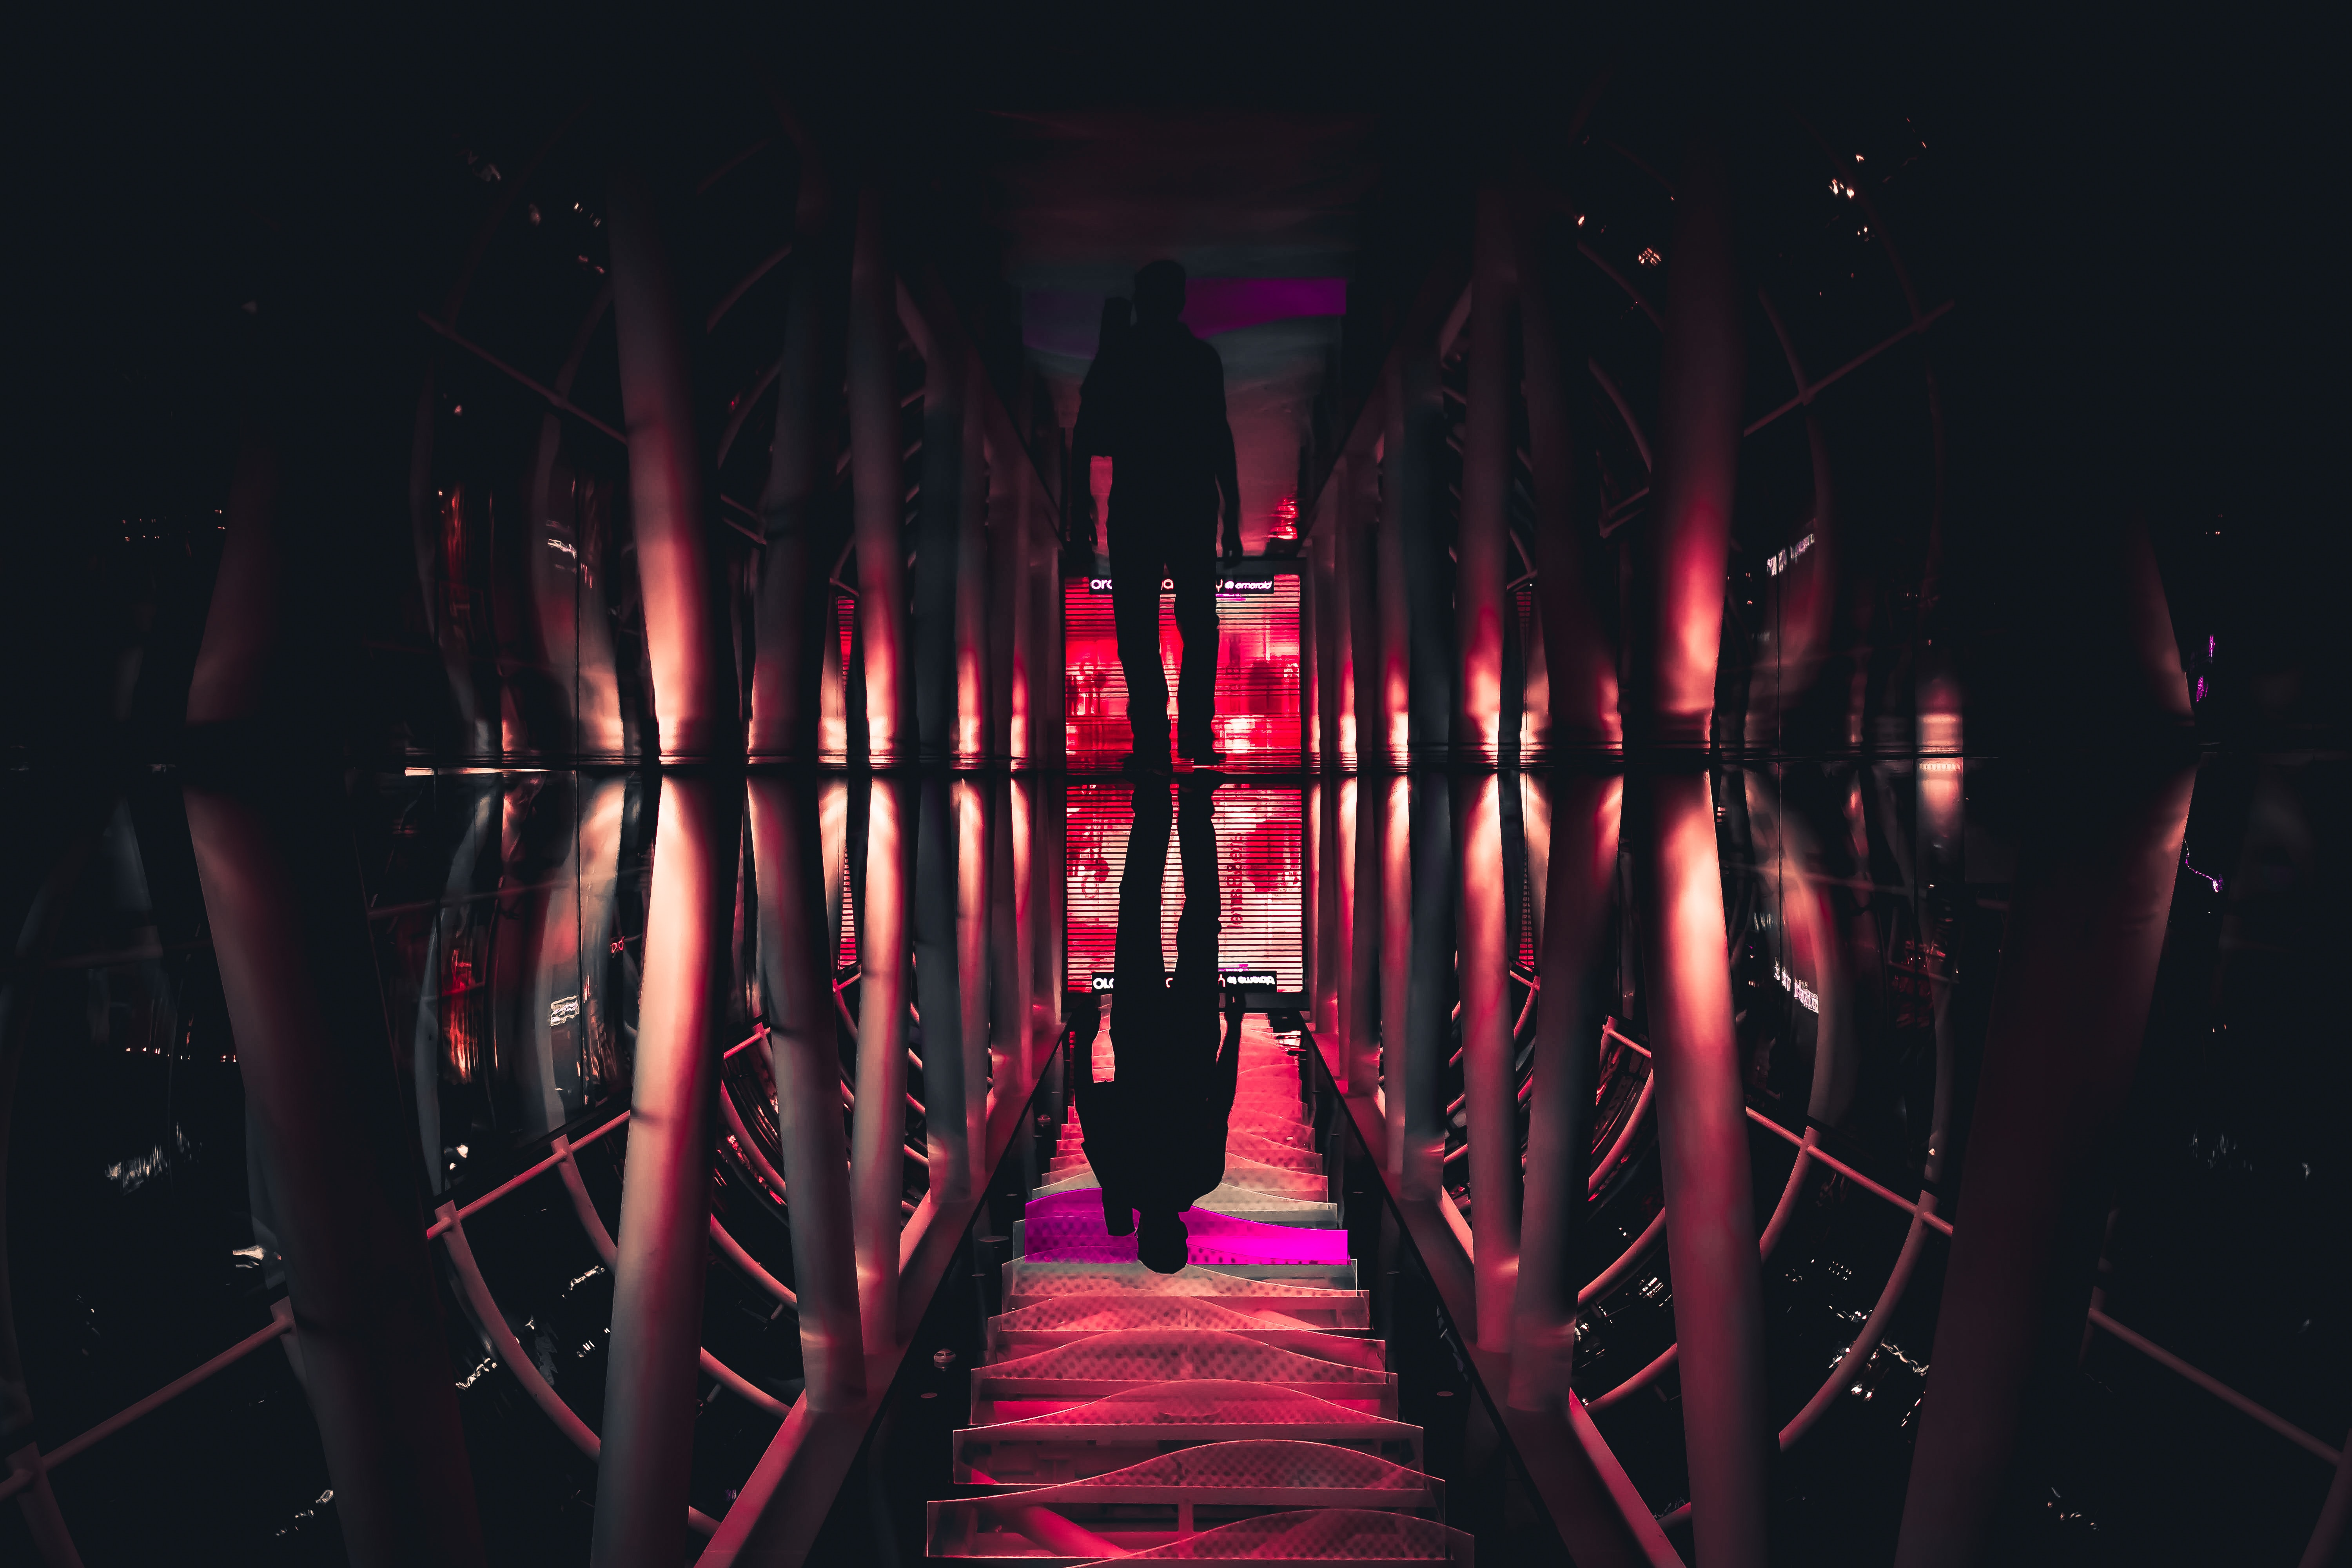 Silhouette of person walking in a dark room with glowing red lights